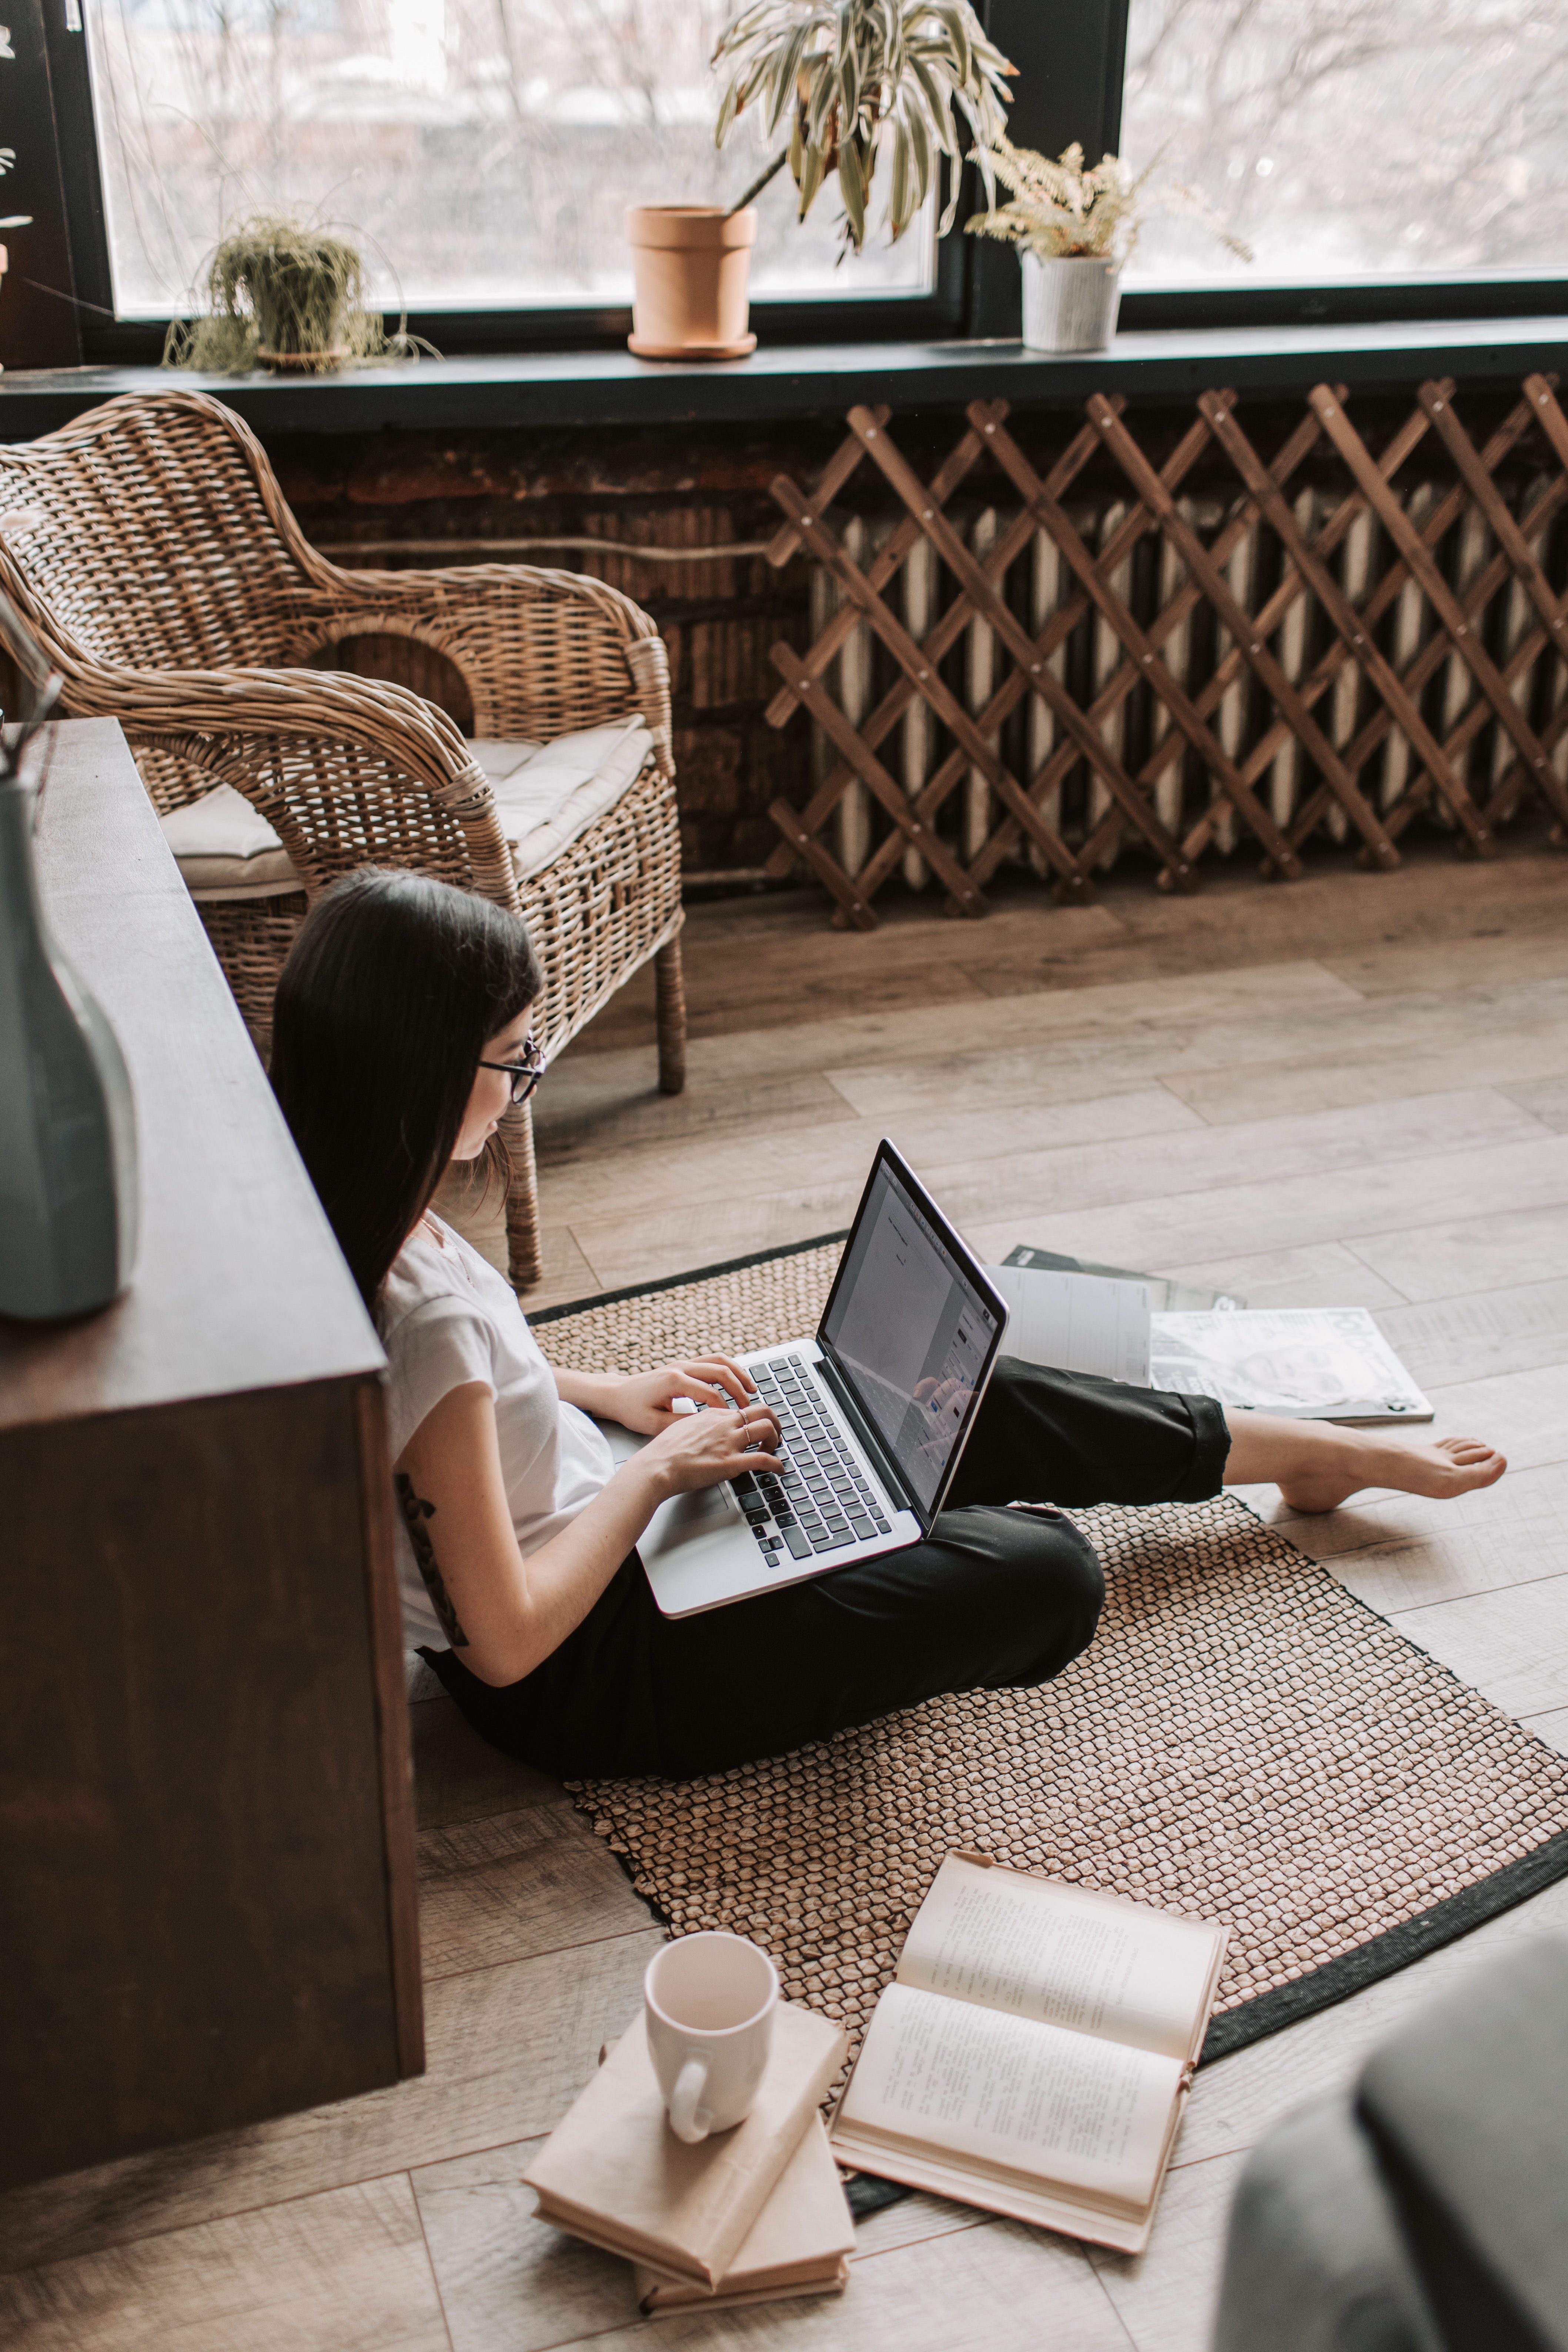 A young woman sitting on the floor and working on her laptop.